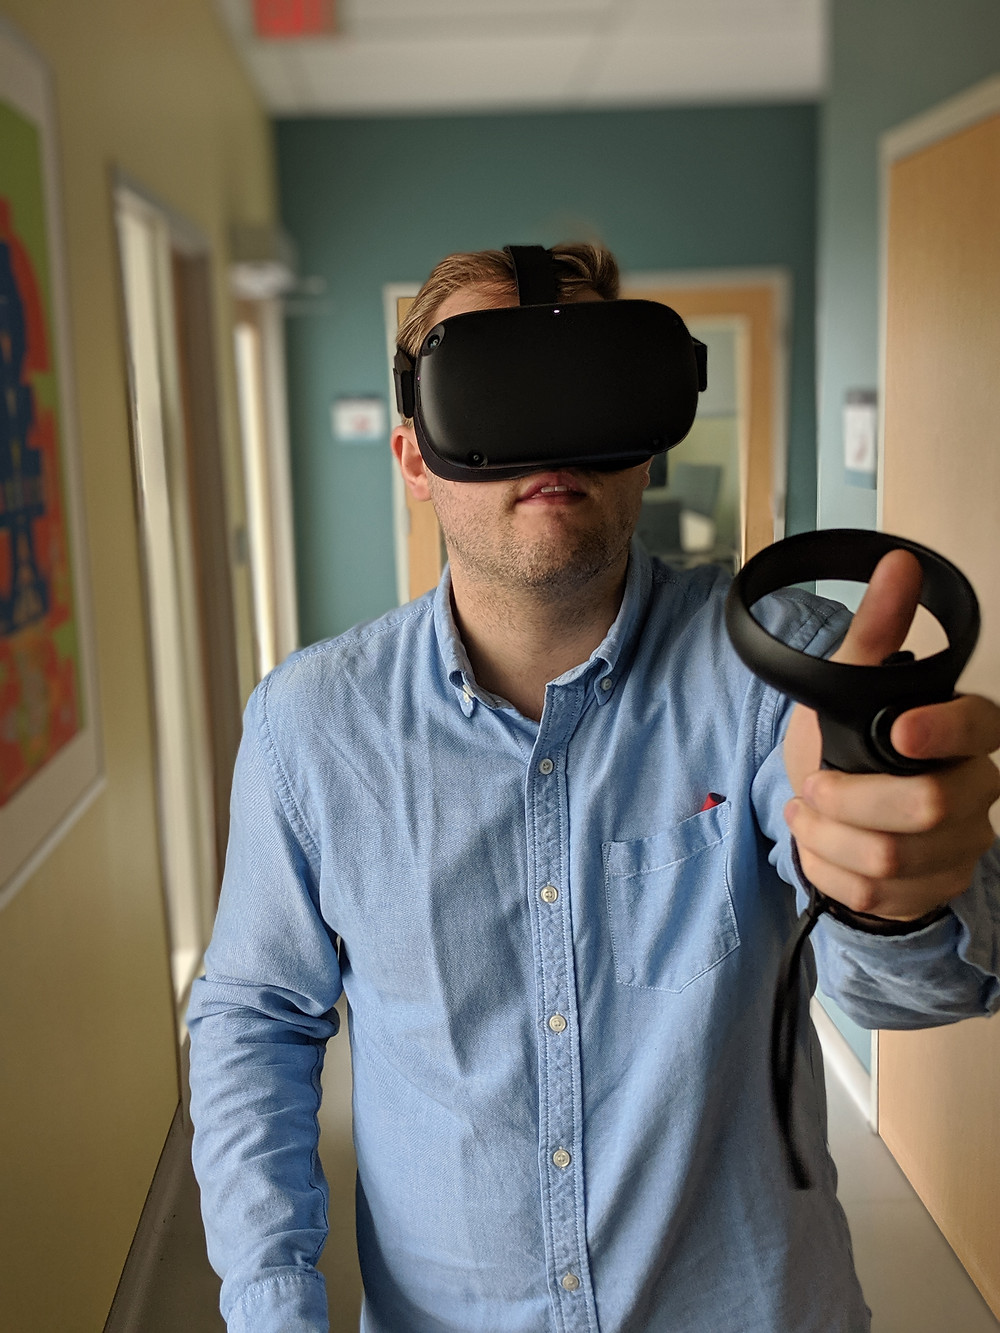 A guy trying standalone virtual reality for the first time